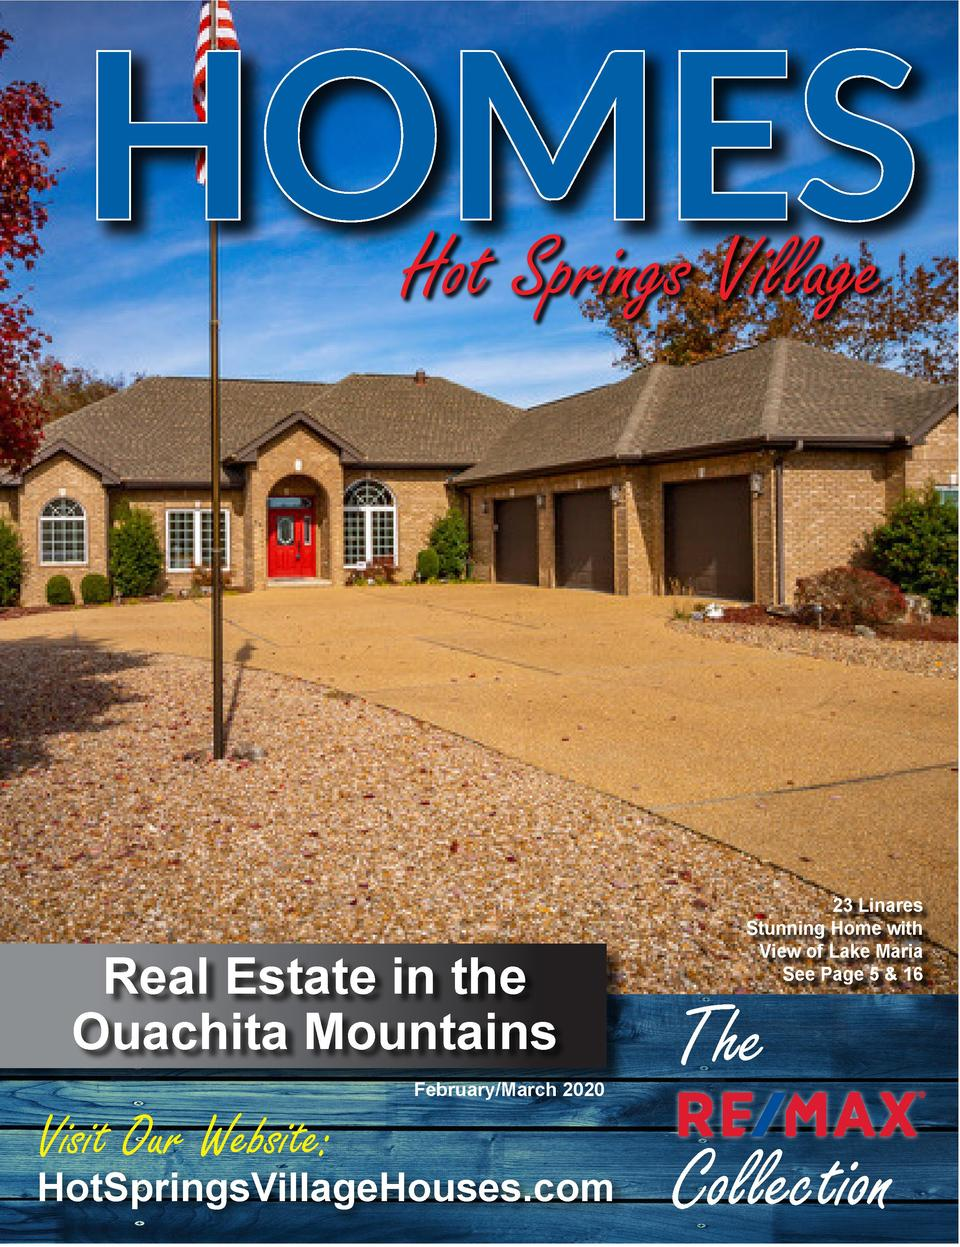 HOMES Hot Springs Village  Real Estate in the Ouachita Mountains  Visit Our Website   February March 2020  HotSpringsVilla...